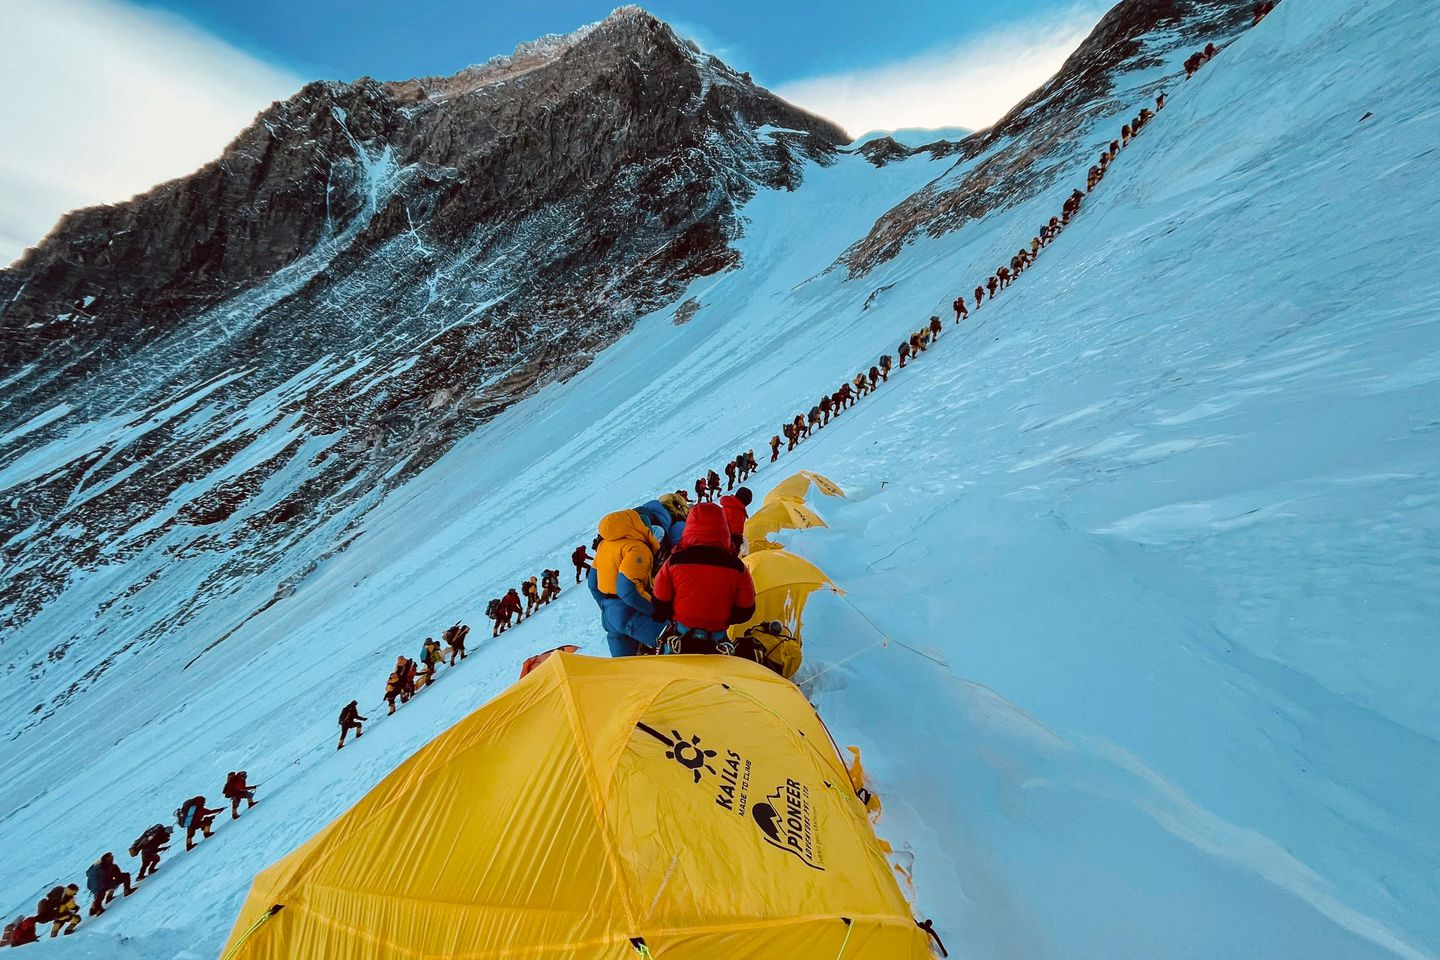 Mountaineers lined up as they climb a slope during their ascend to summit Mount Everest, in Nepal.